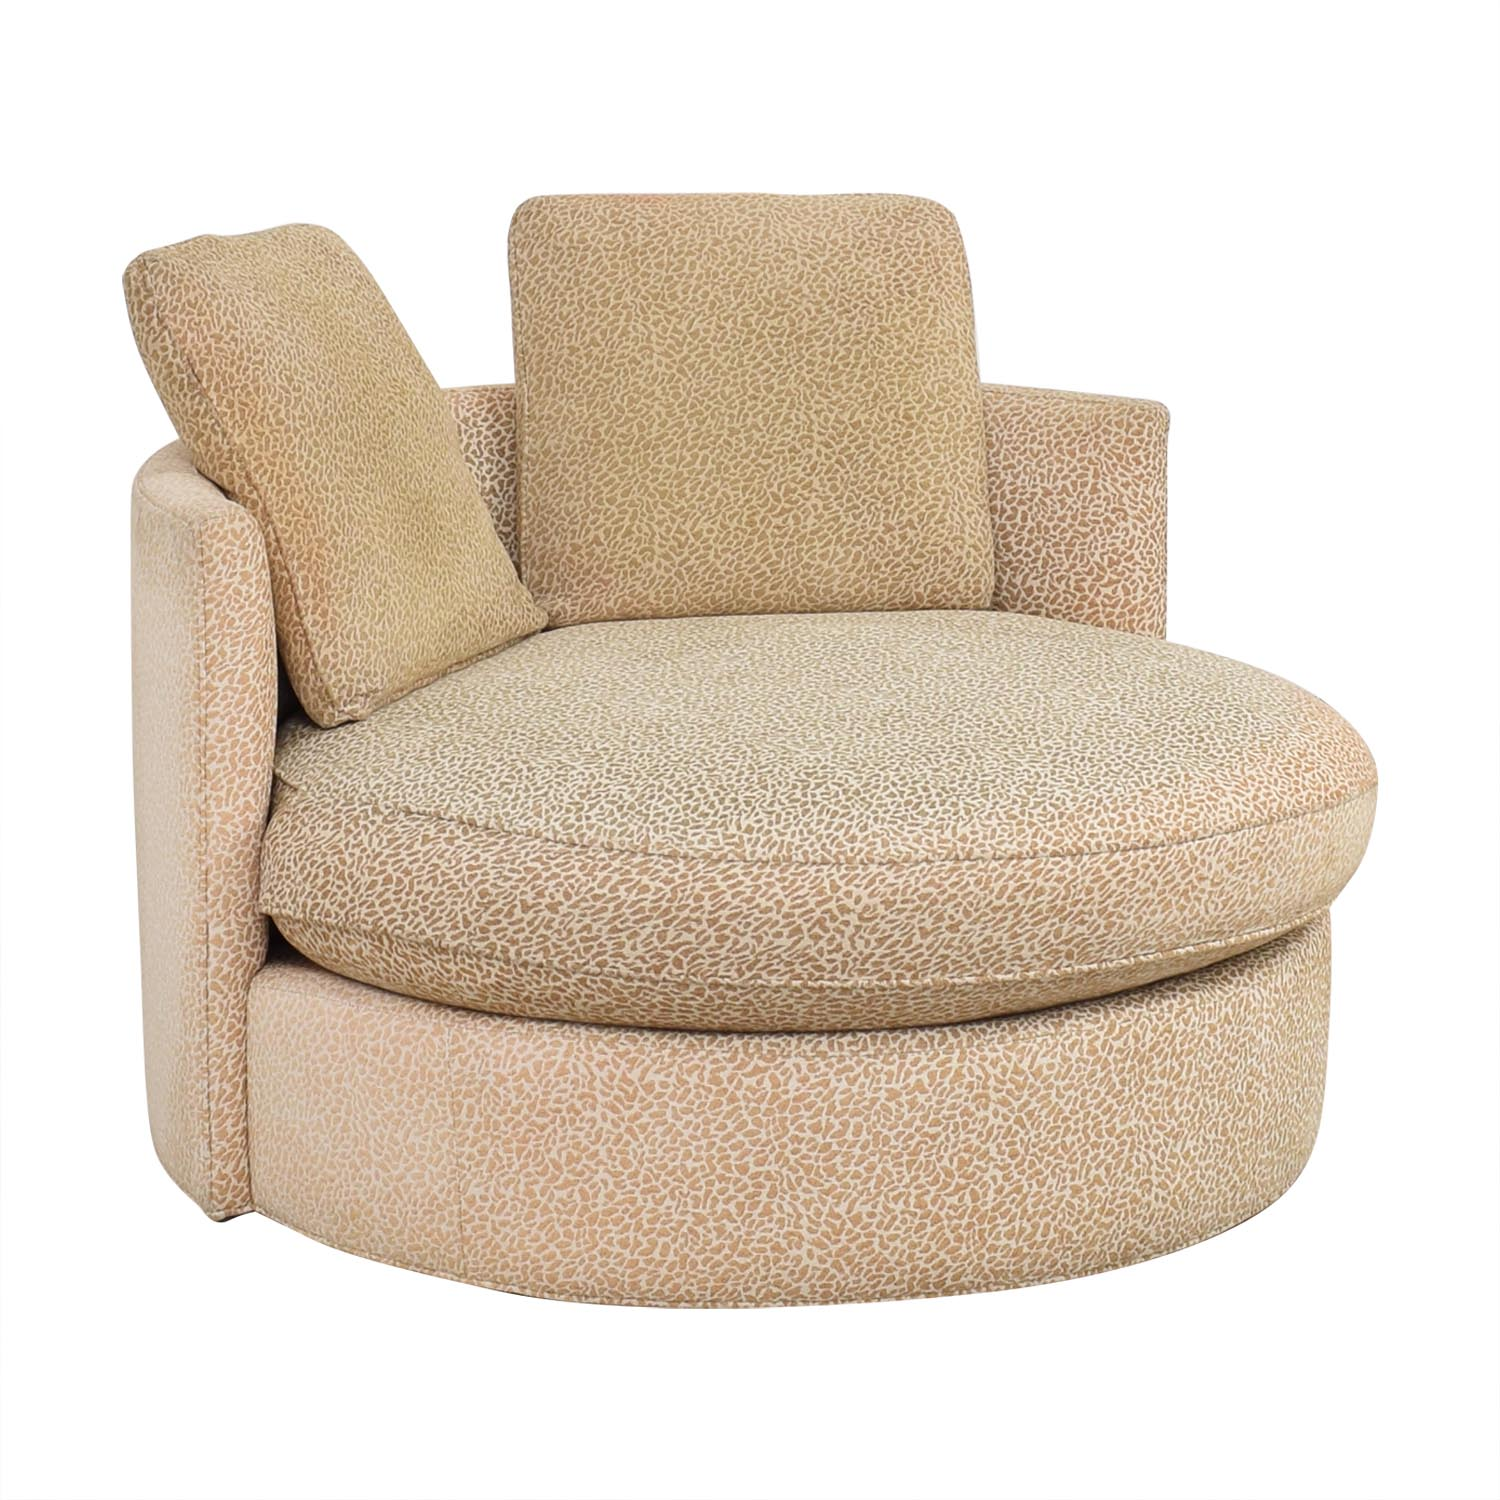 buy Macy's Circle Swivel Chair Macy's